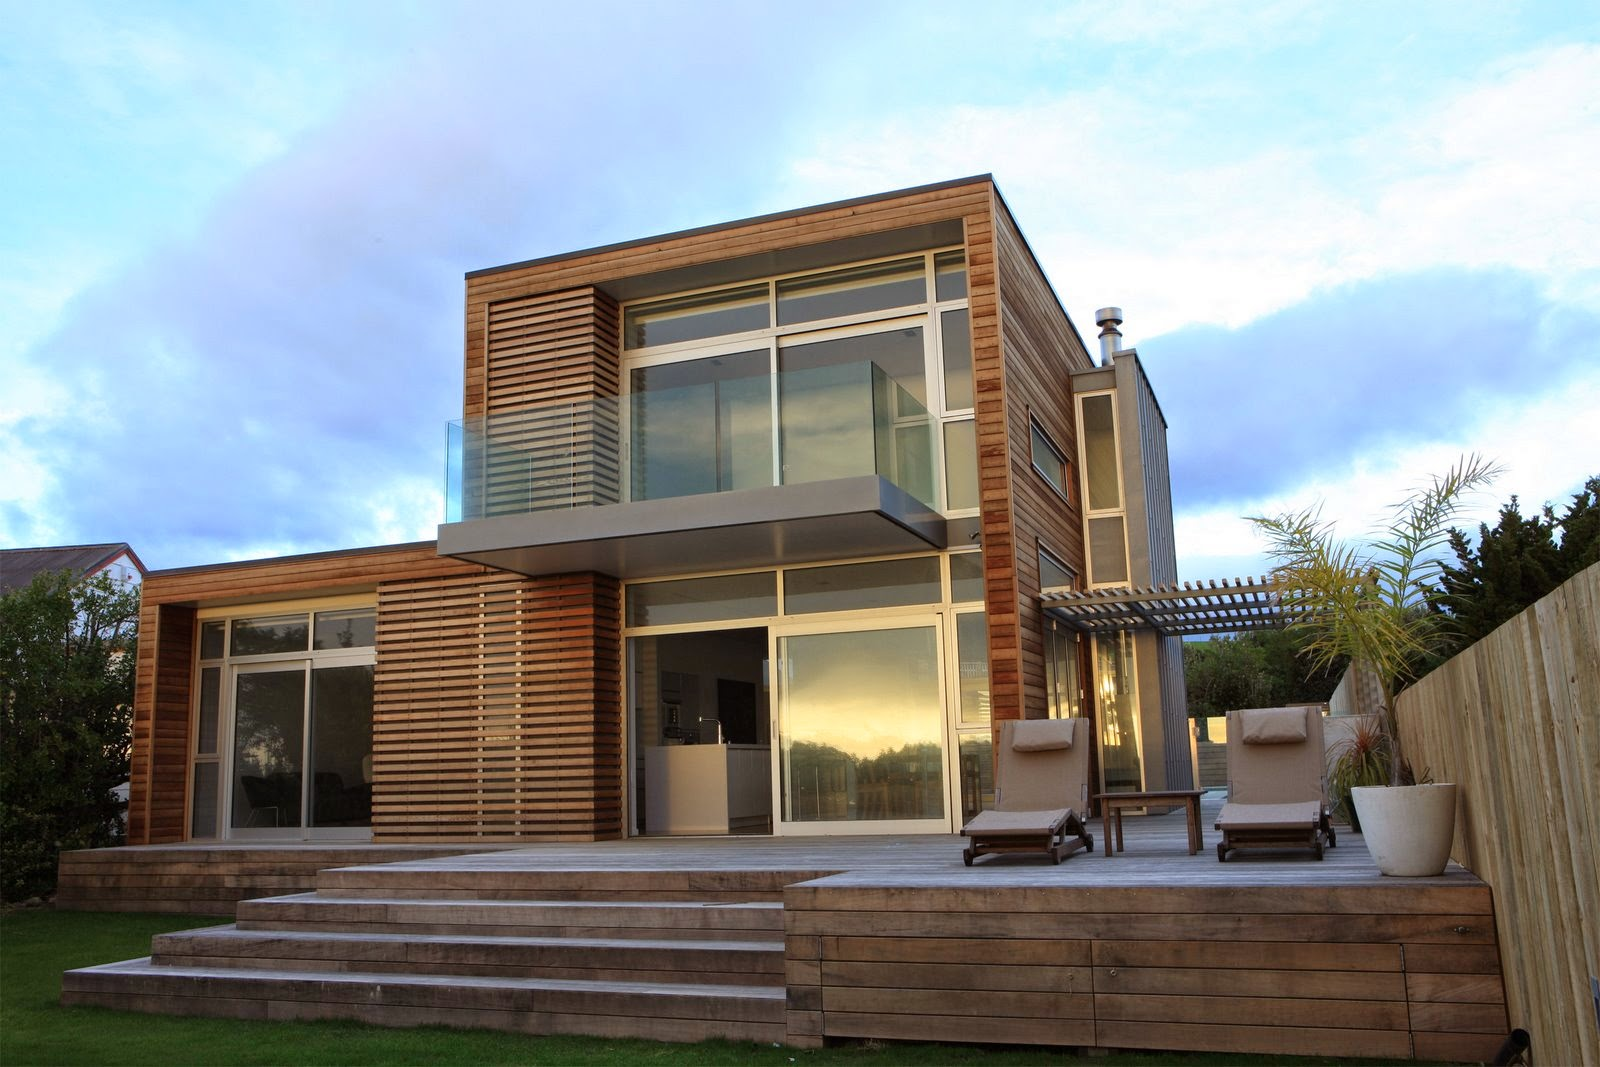 modern architecture home design with fantastic facade inspiration - Architectural Designs Of Homes